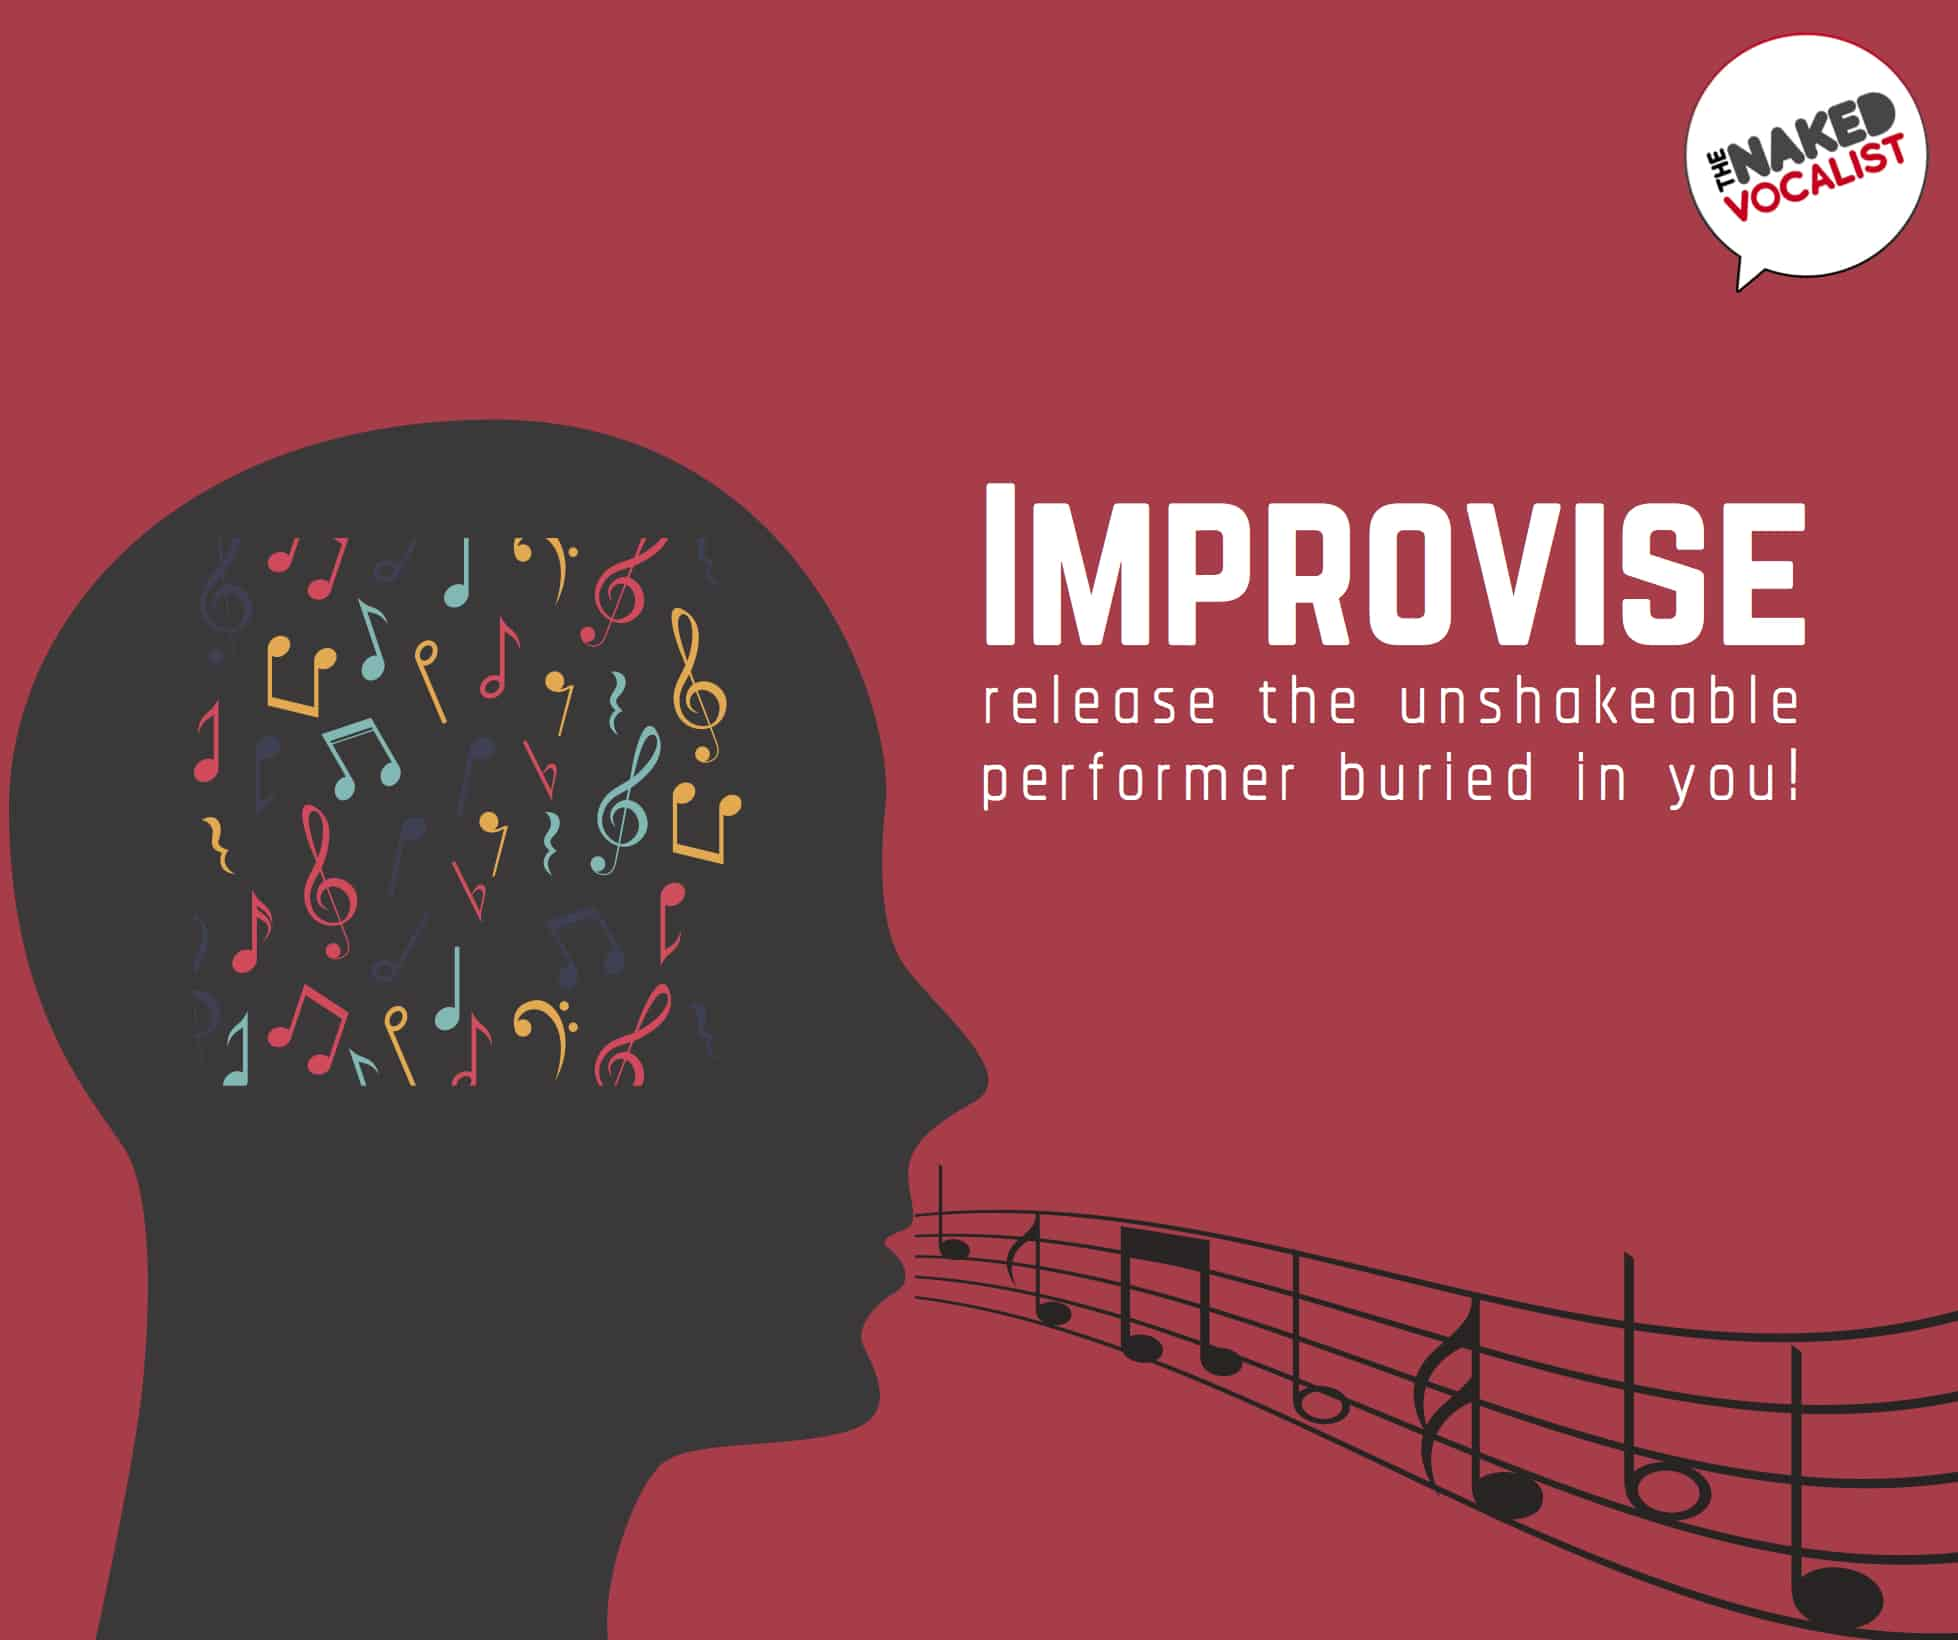 Use vocal improvisation to release the unshakeable performer buried